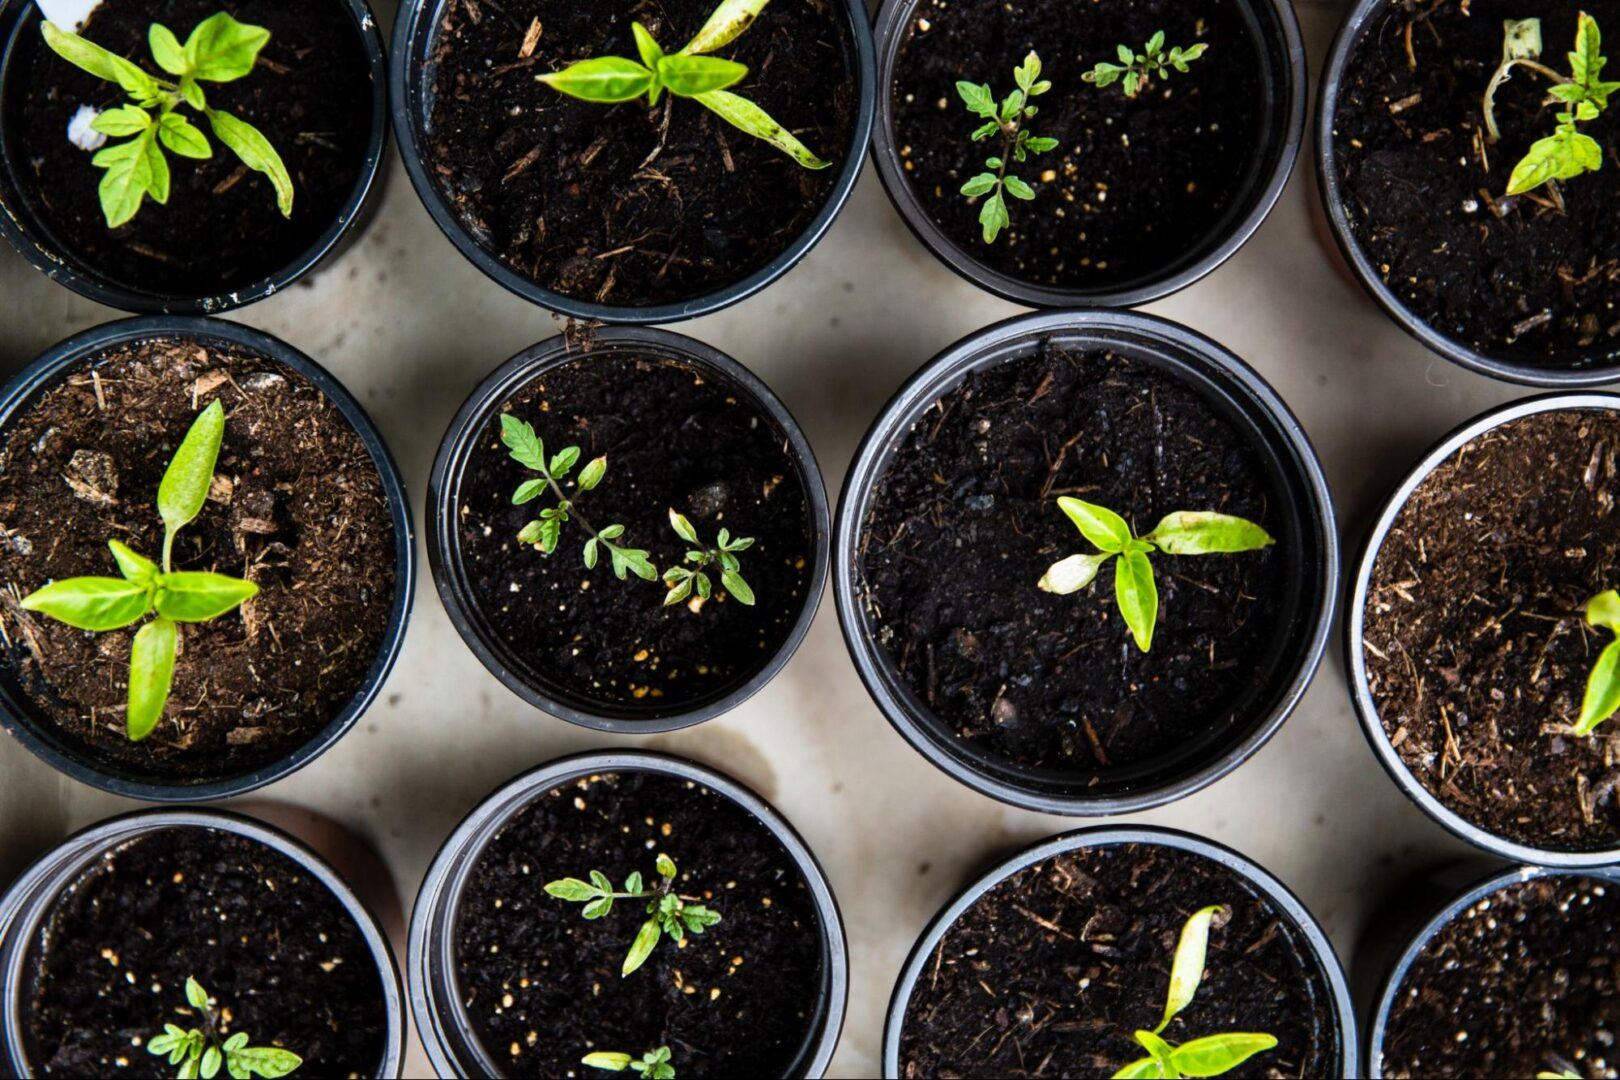 Seedlings, find the best garden shops in Franklin, TN, Brentwood and Williamson County, TN on FranklinIs, gardening tips for gardeners and more!